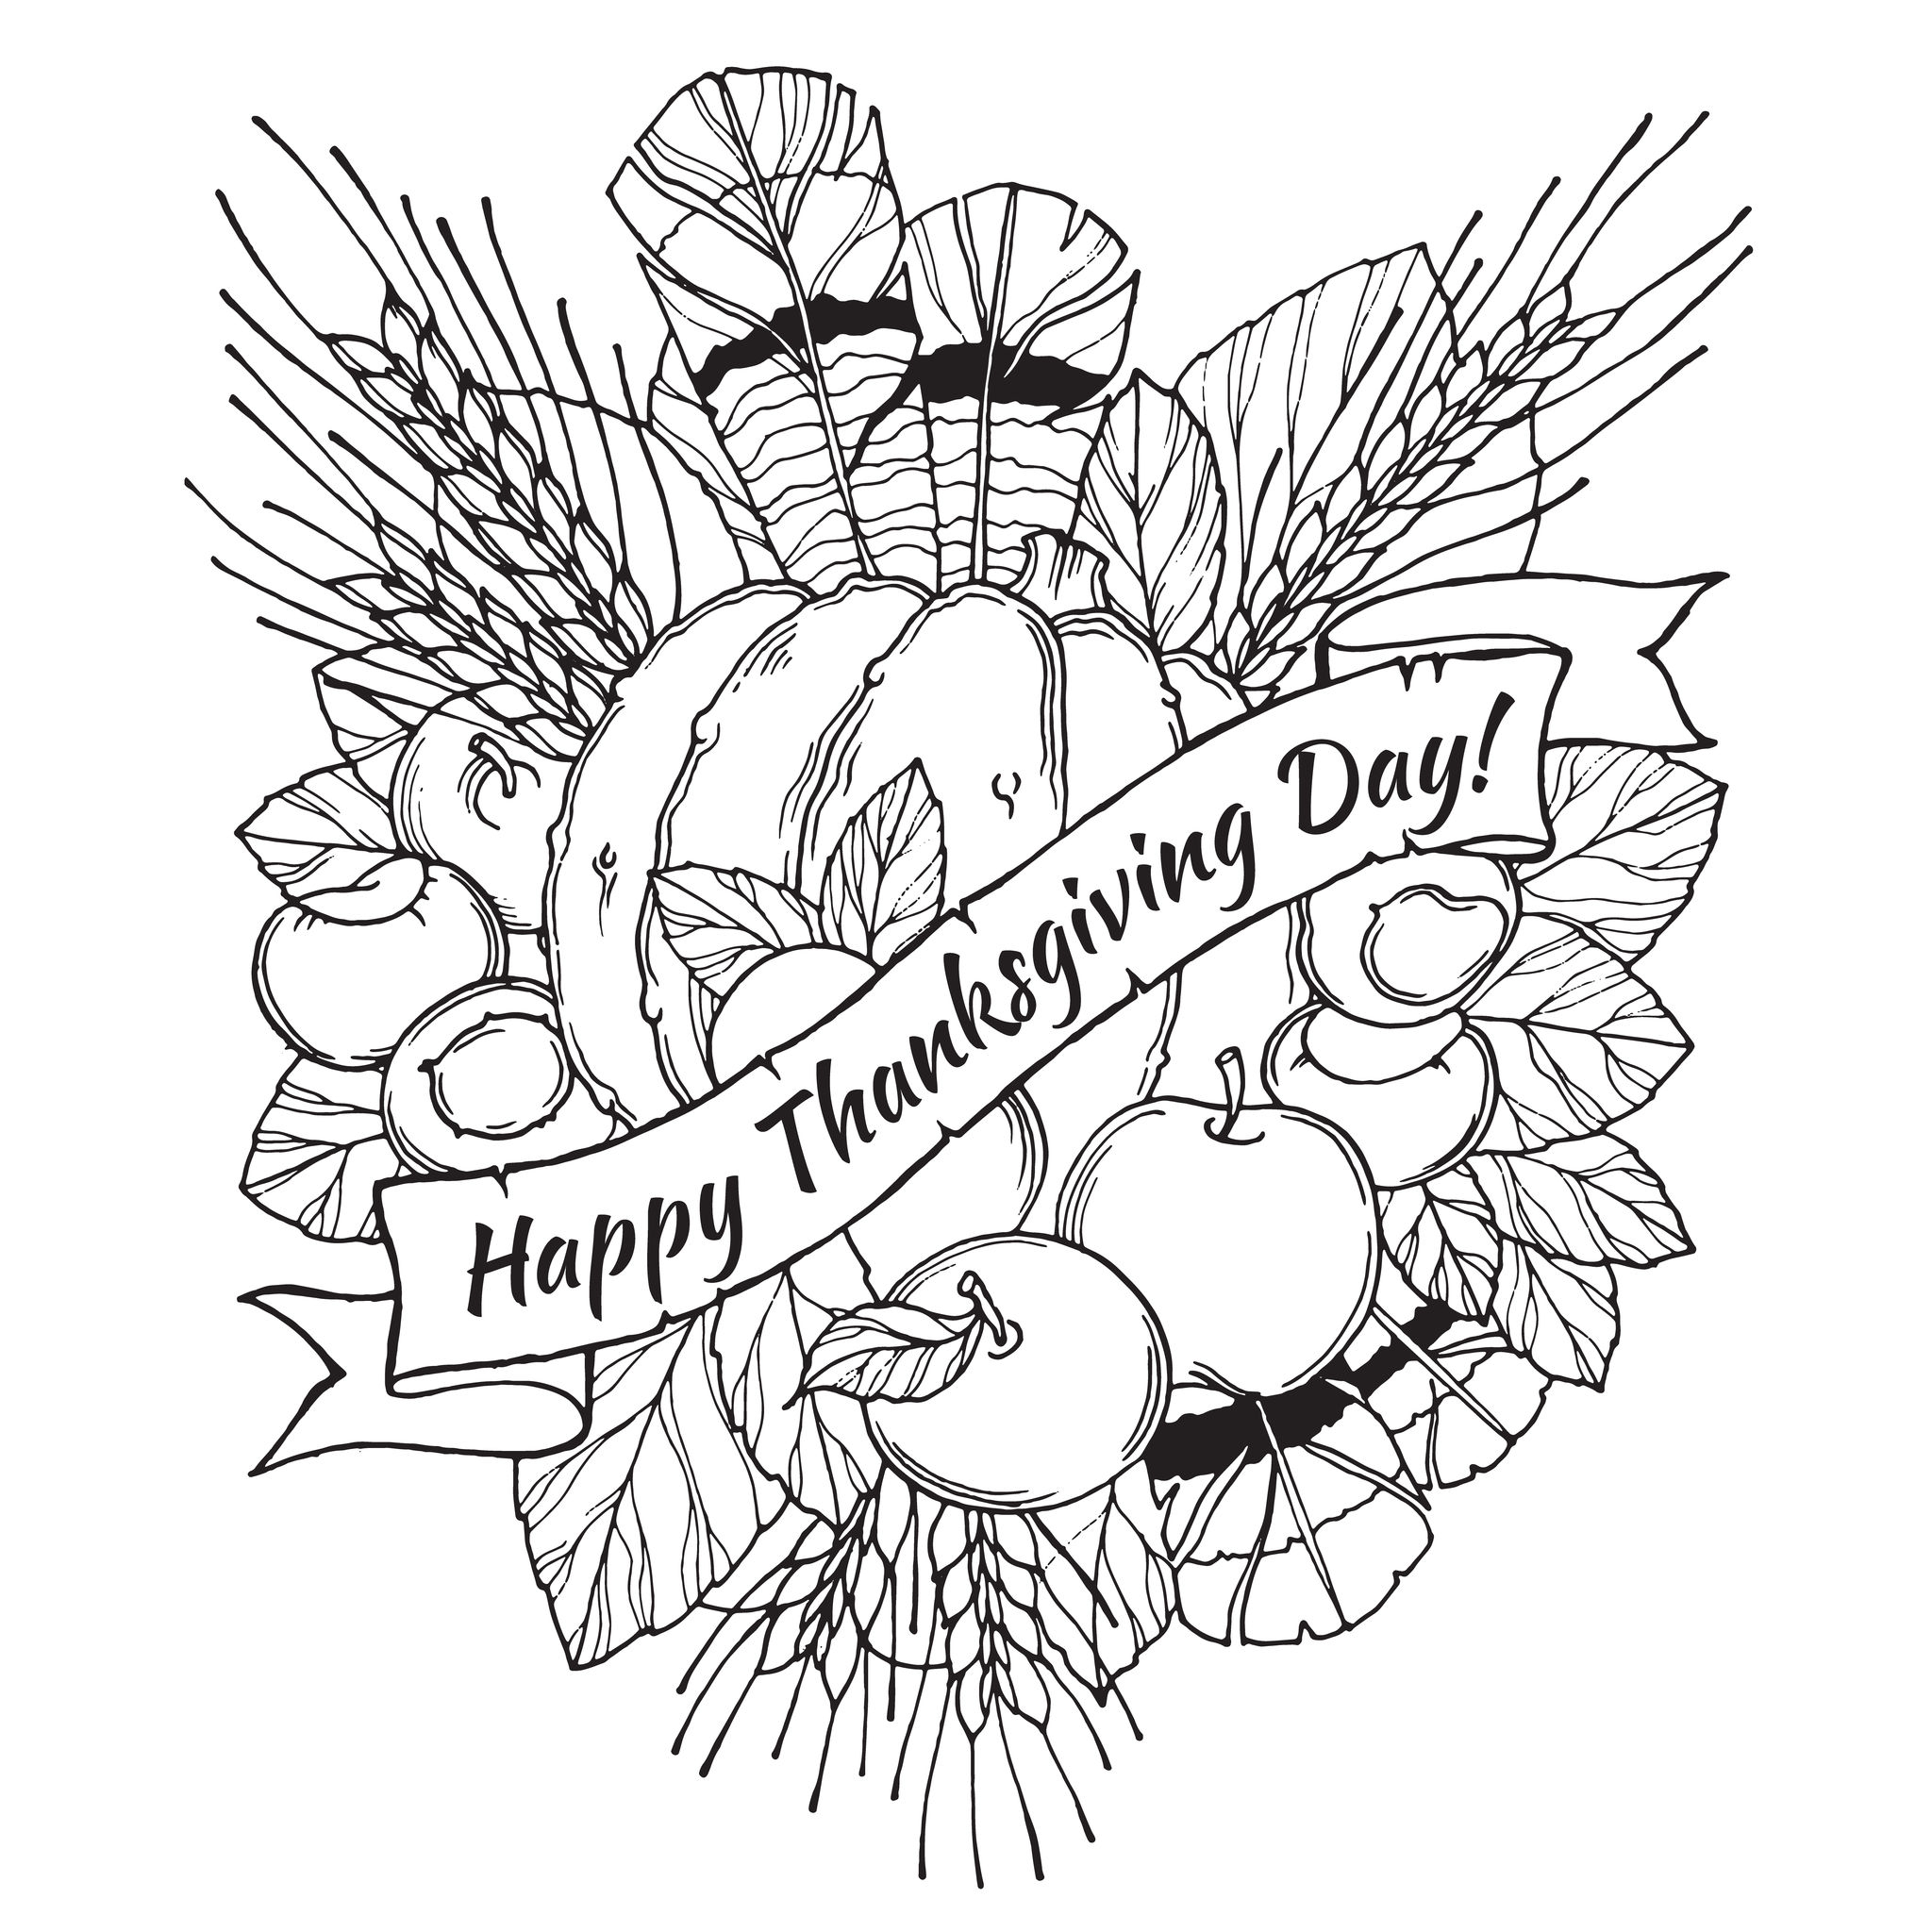 Optical Illusion Coloring Pages Printable | Free Coloring ...